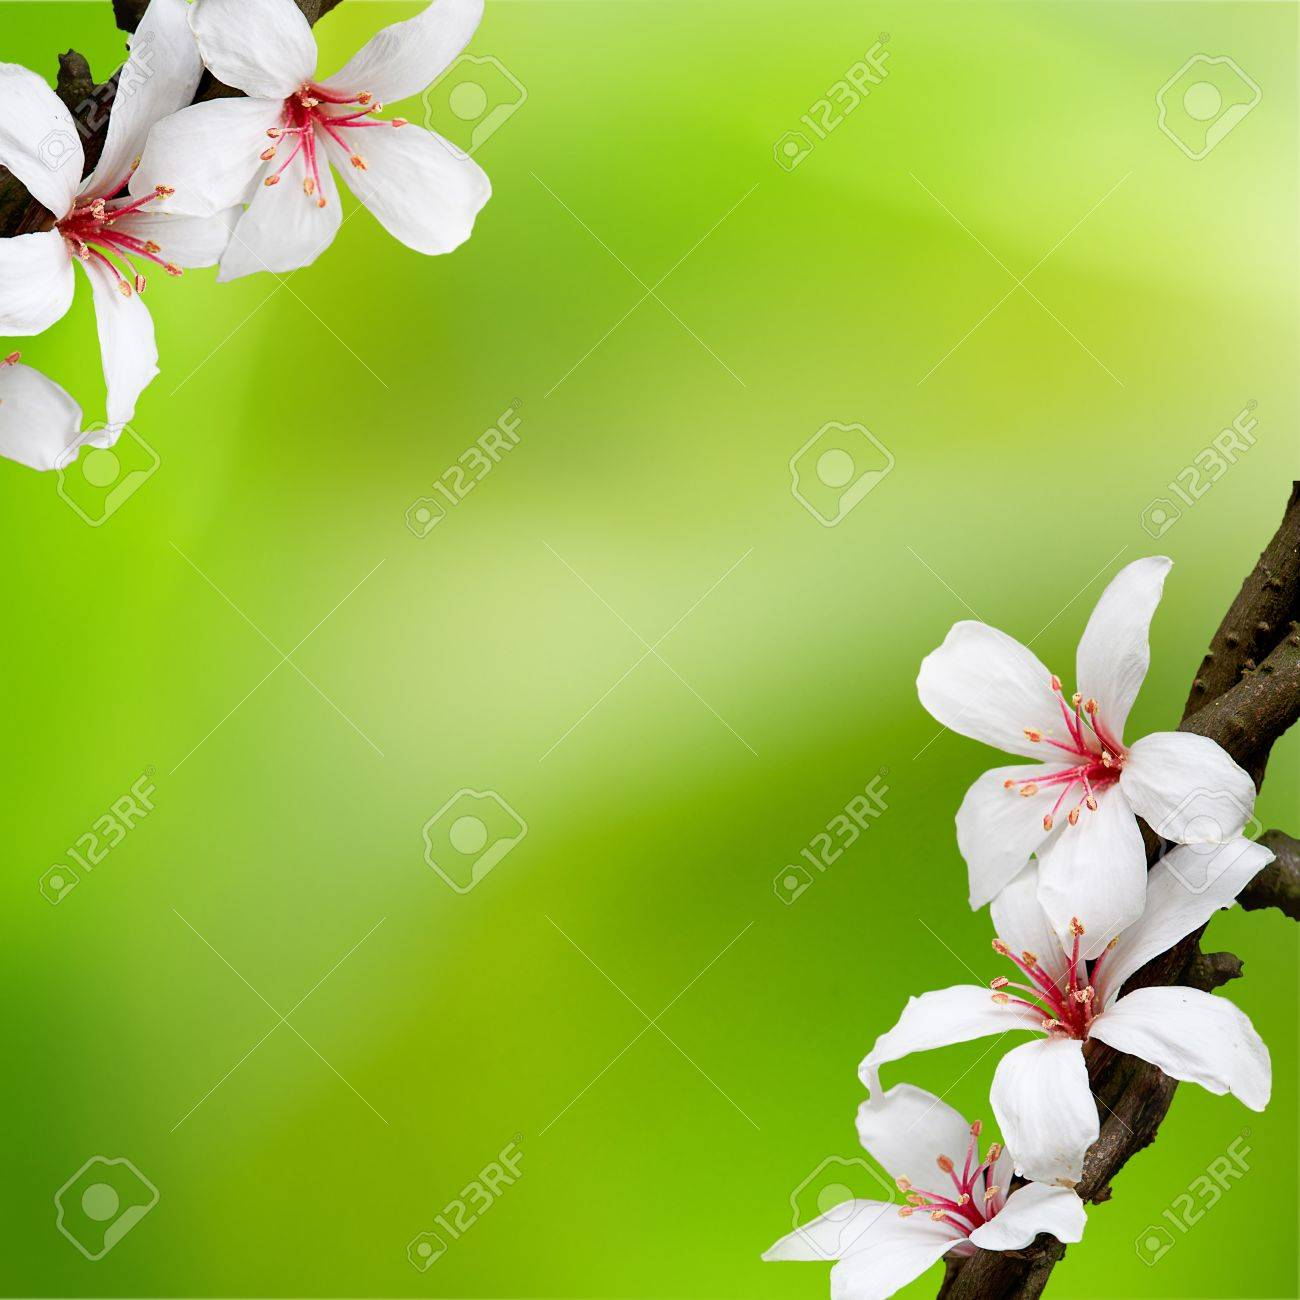 beautiful tung flowers for adv or others purpose use - 16549755